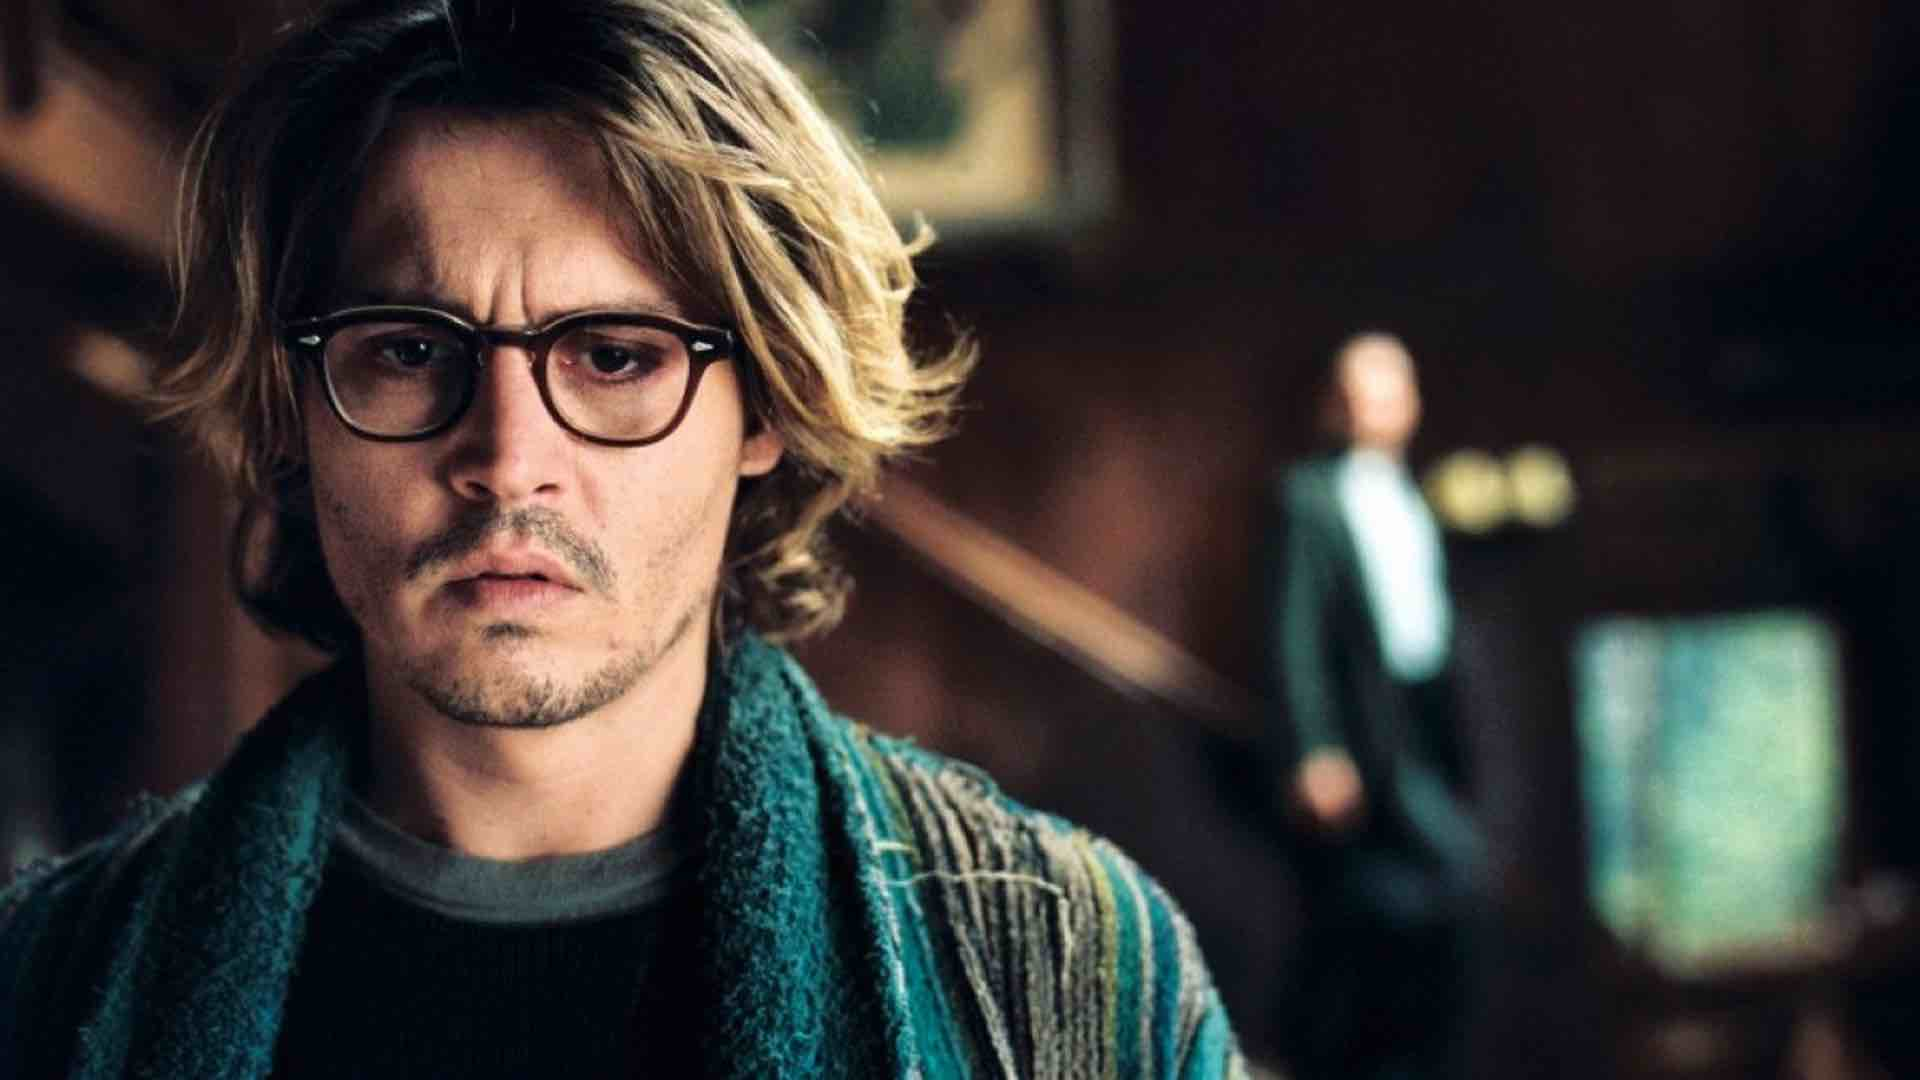 Jonny Depp in Secret Window